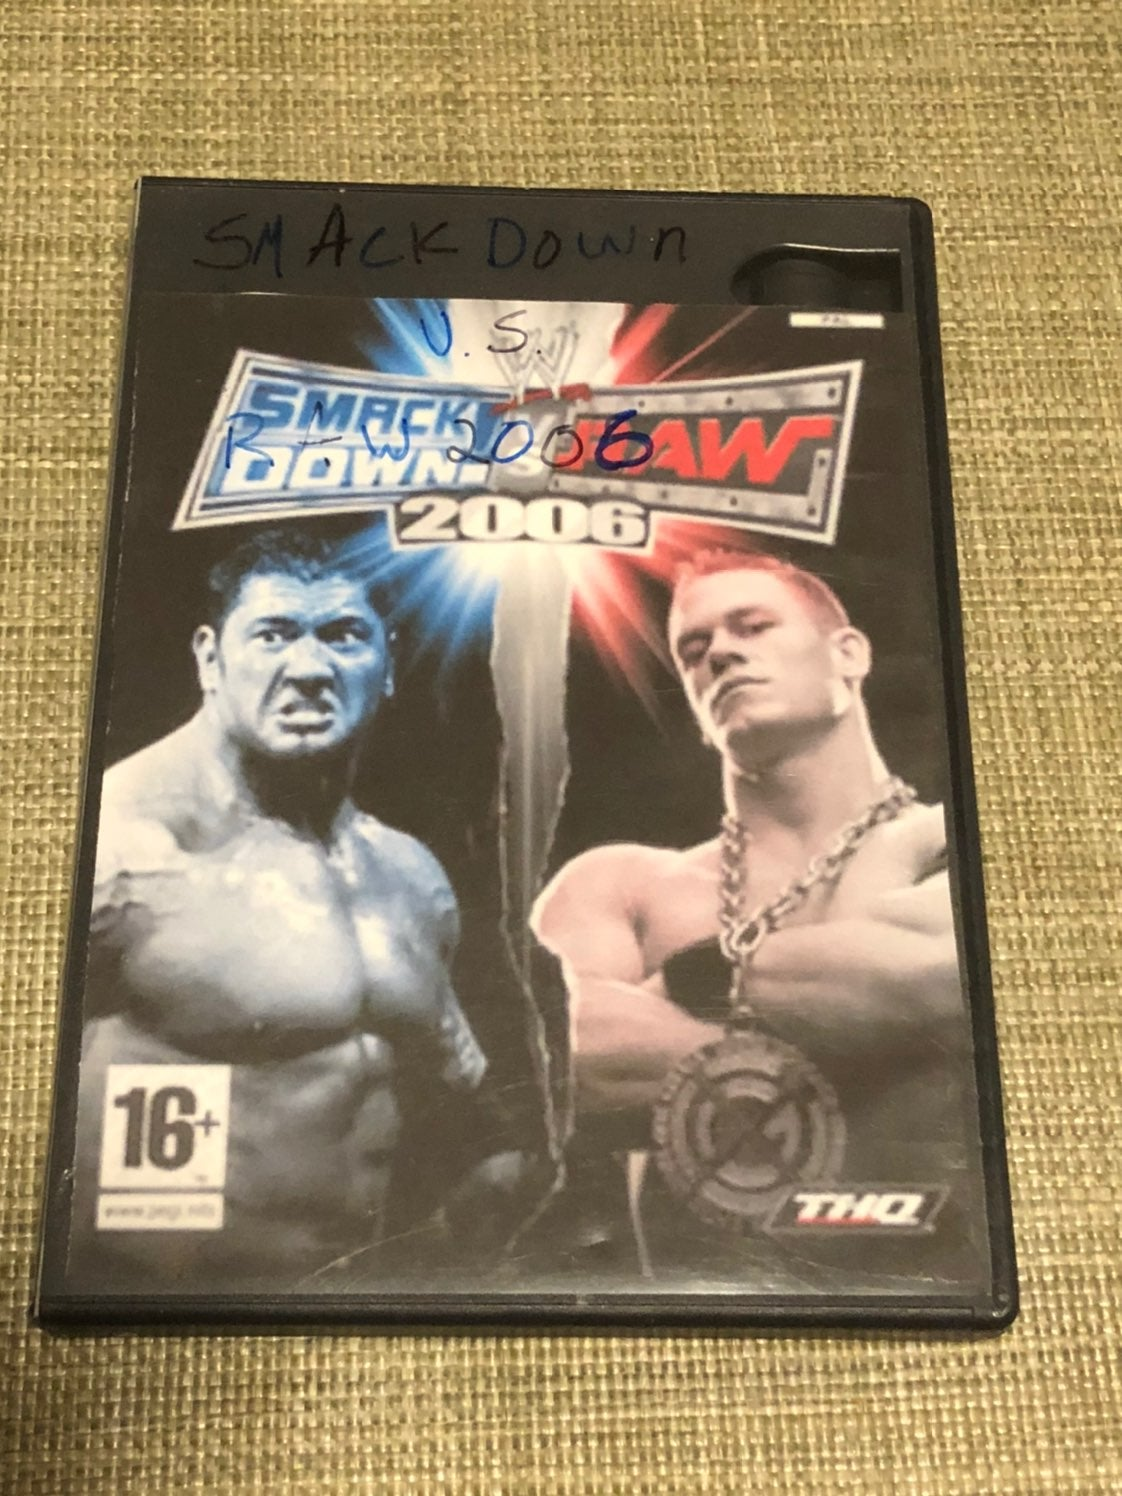 WWE SmackDown vs Raw 2006 PS2 Game